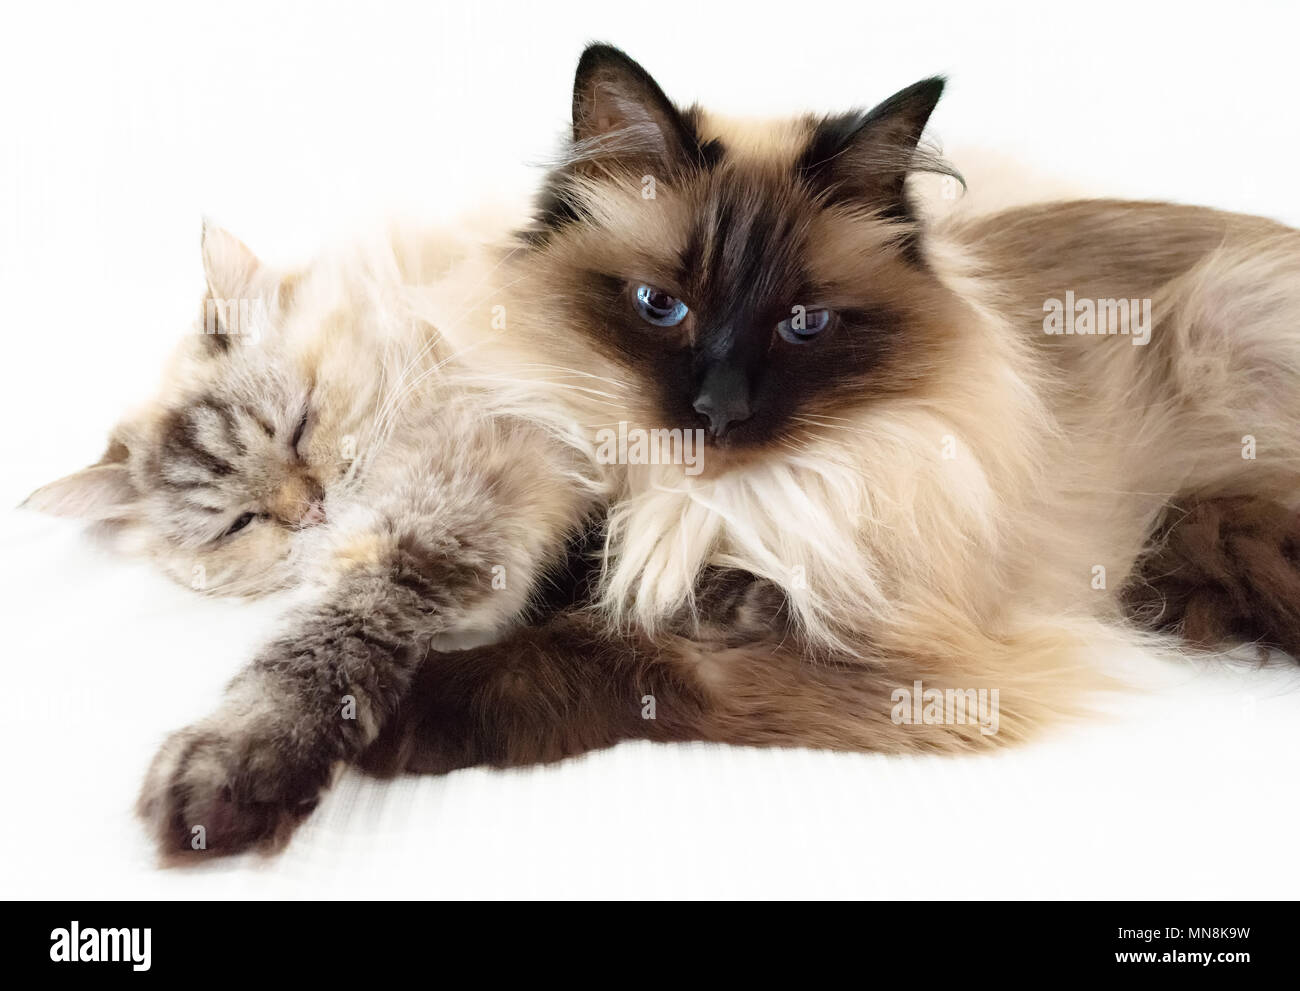 two fluffy cats snuggled up against each other on white sheet - Stock Image